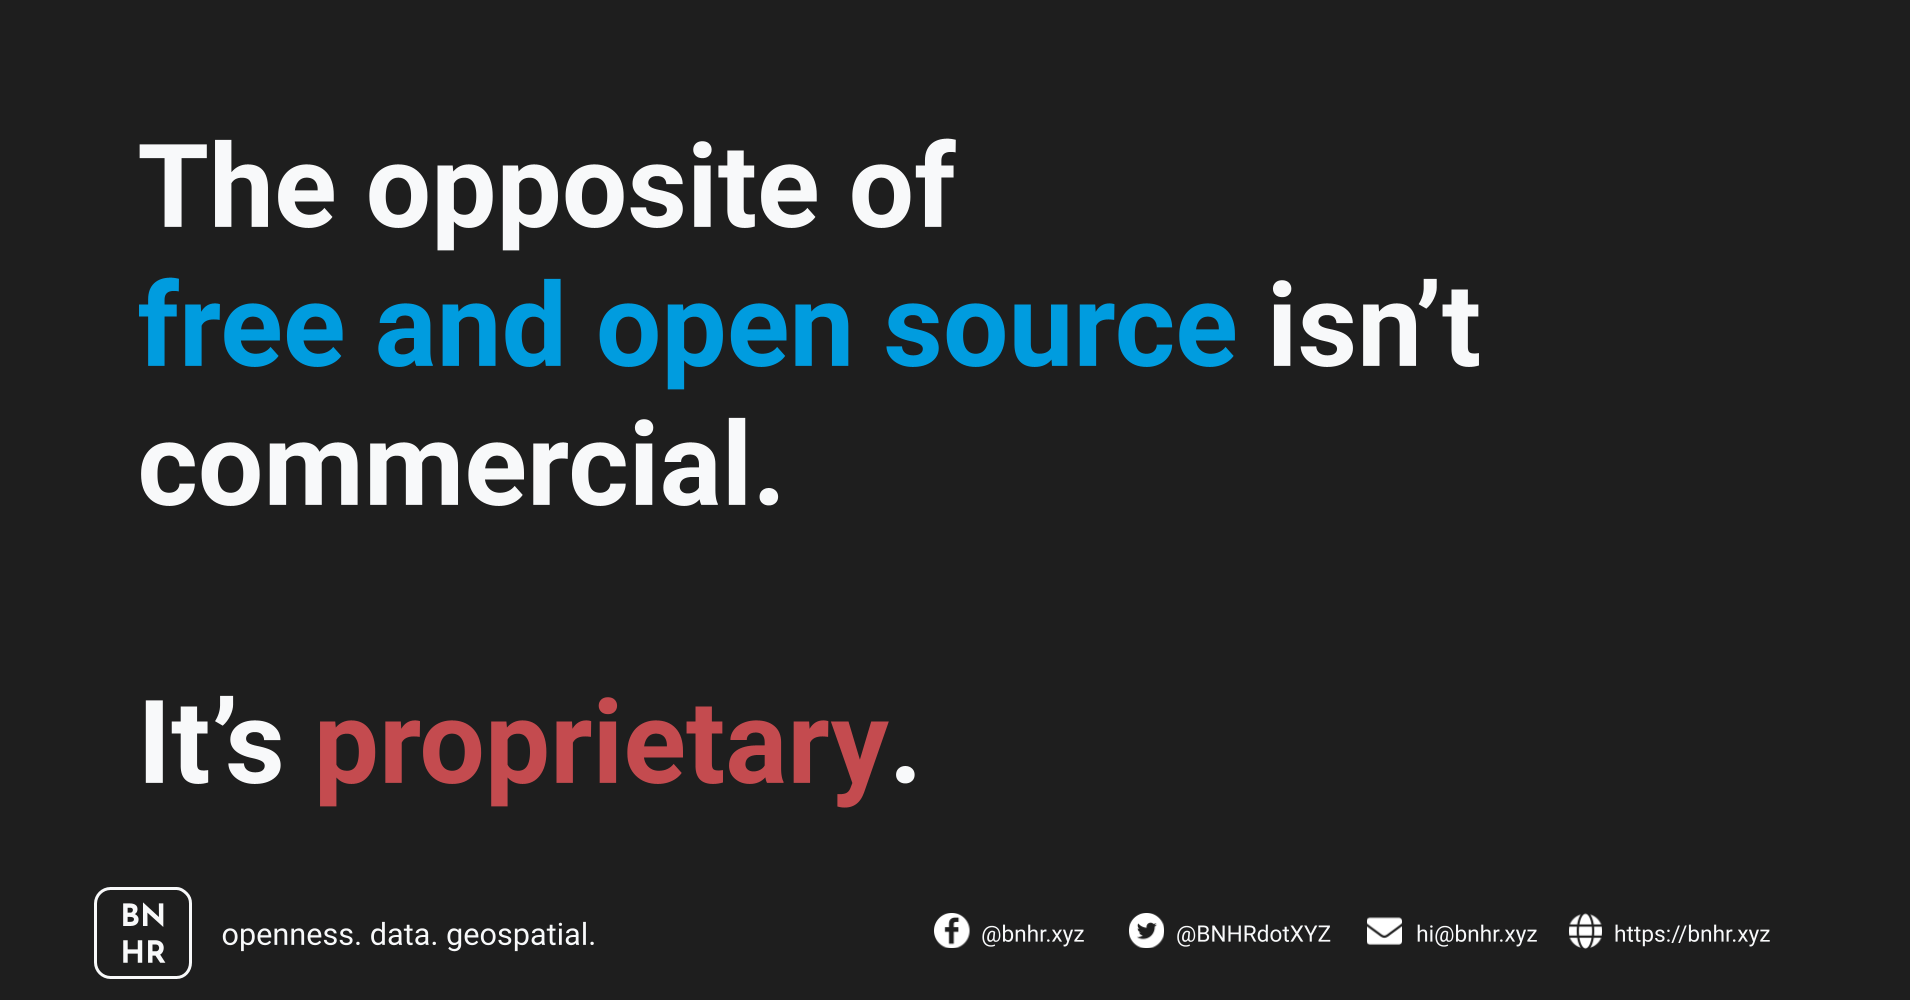 The opposite of free/libre and open source isn't commercial, it's proprietary.